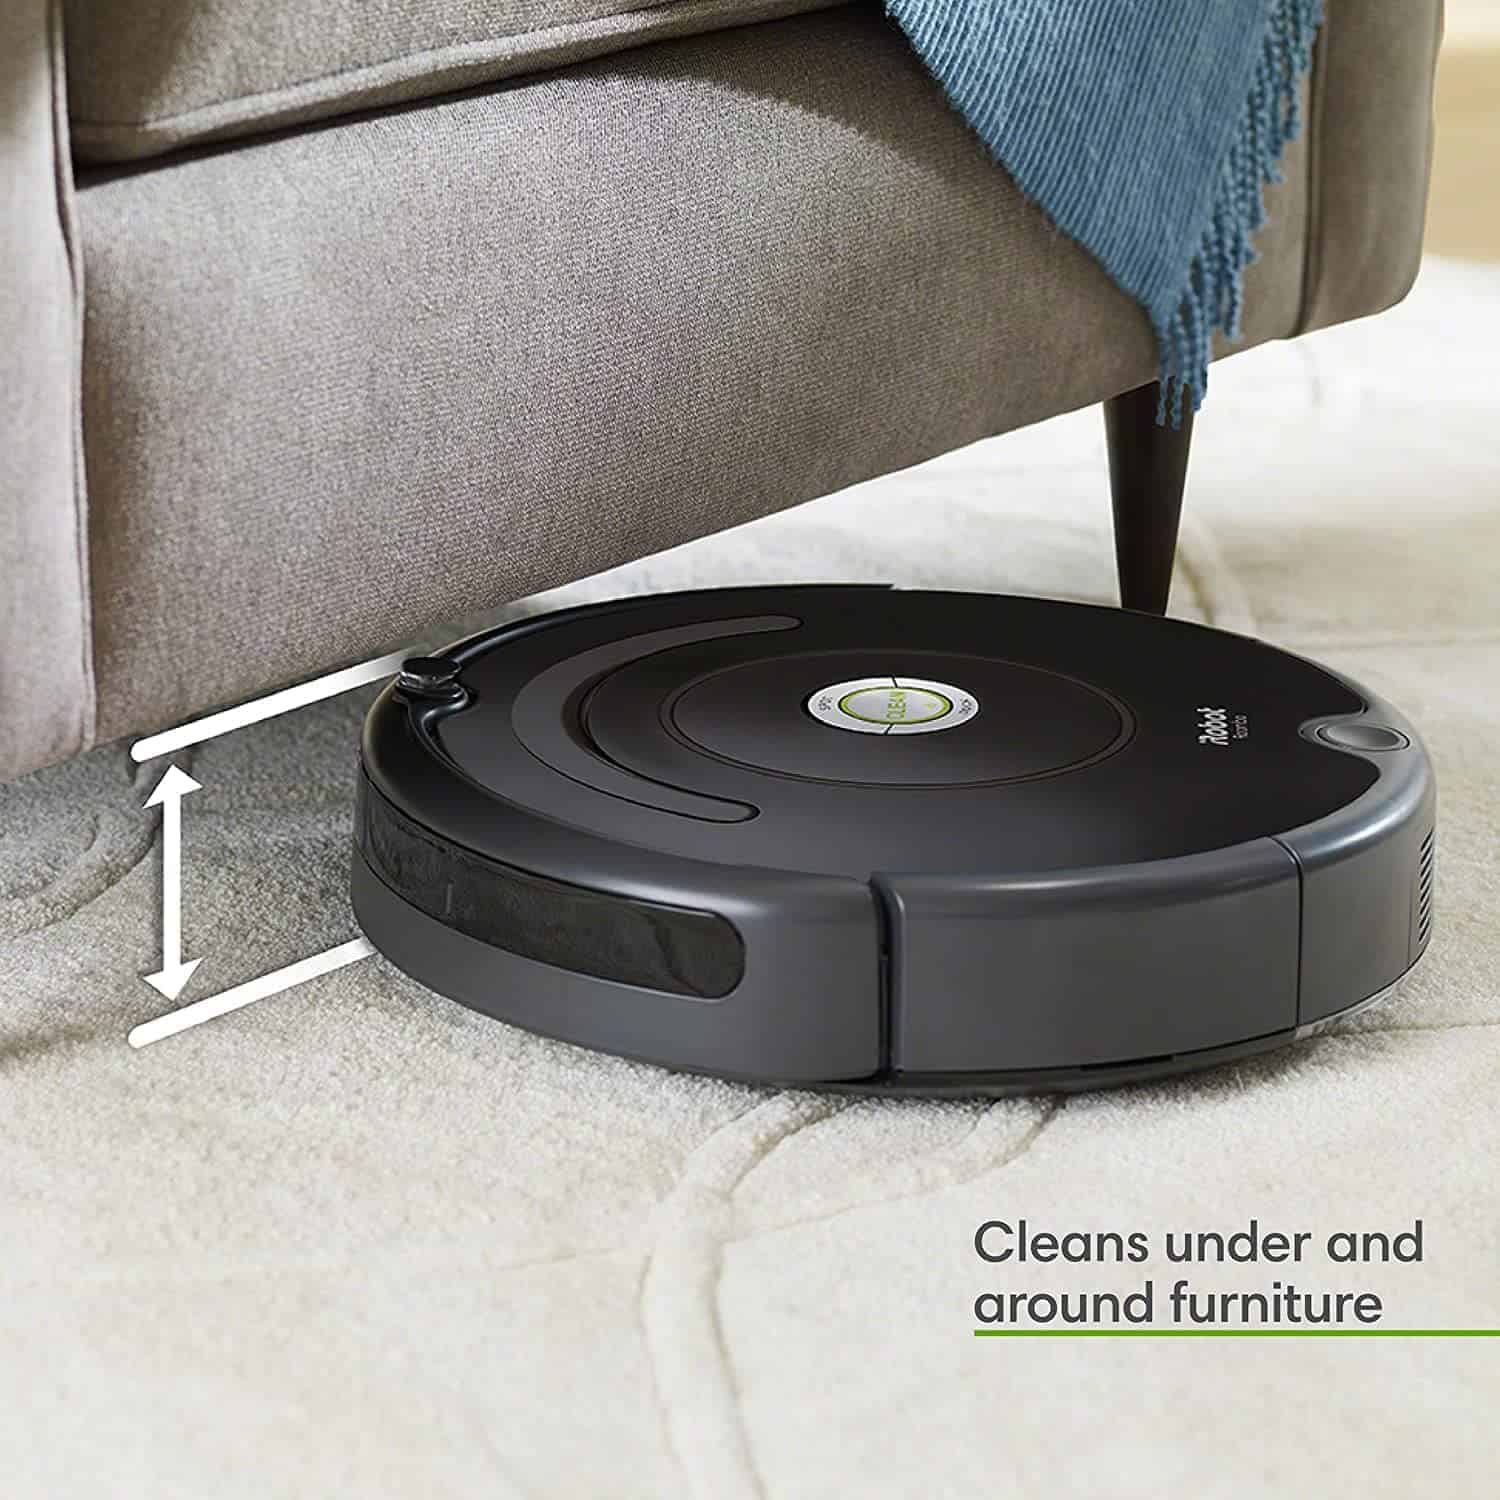 Robot vacuum with best mapping: iRobot Roomba 675